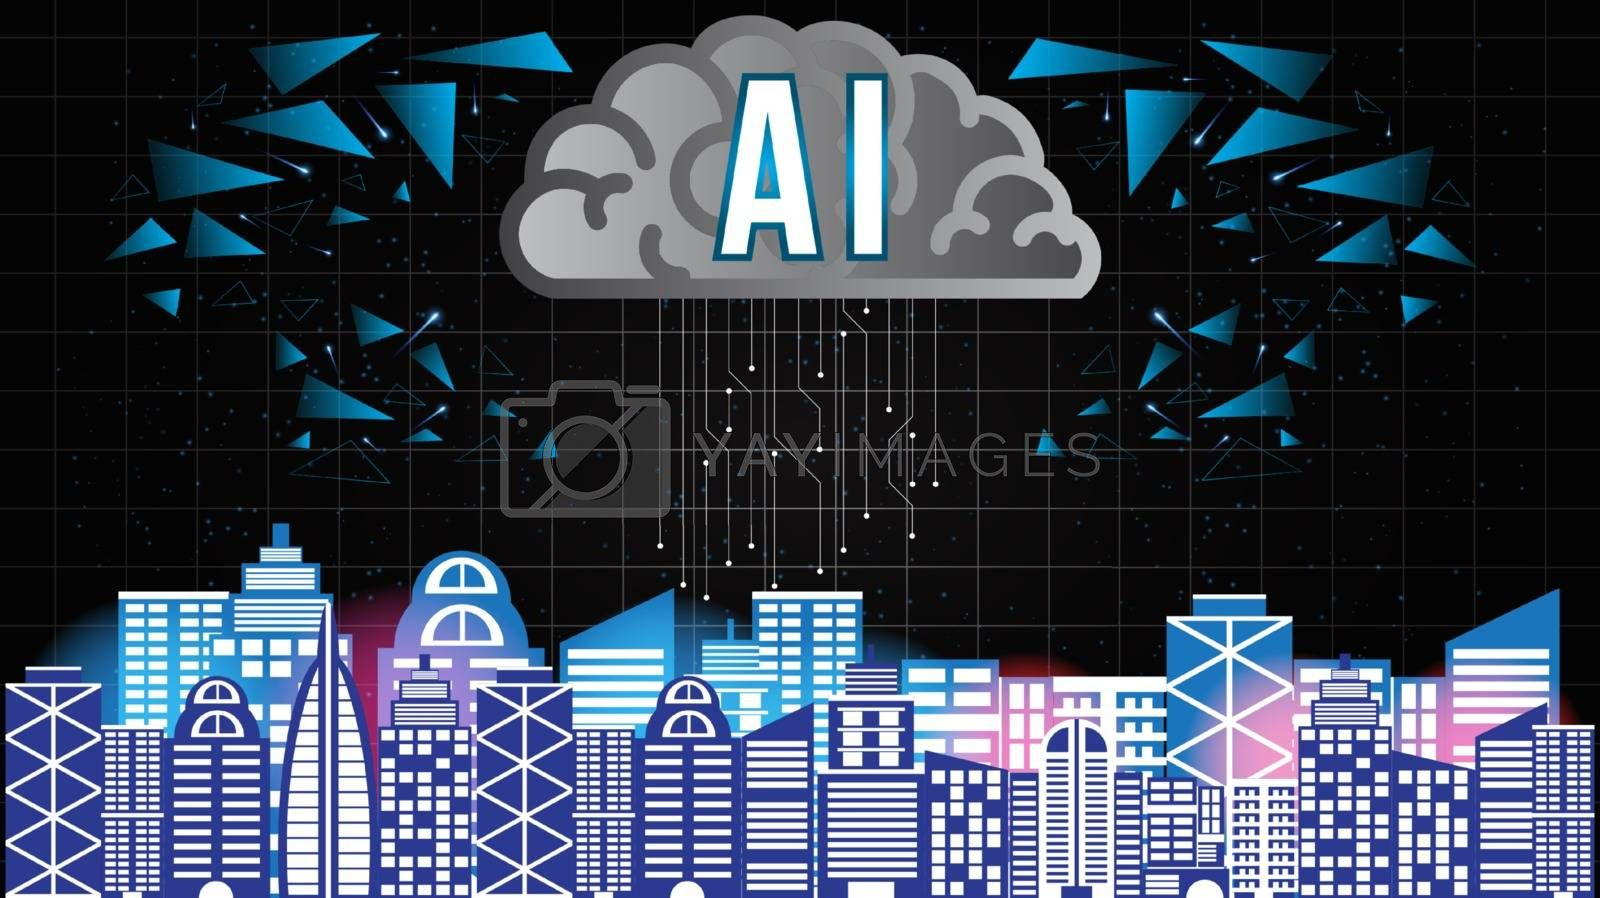 AI Artificial Intelligence technology background concept with brain and building smart city neural network thinks.Abstract futuristic sci-fi concept background.Processing big data, analysis.